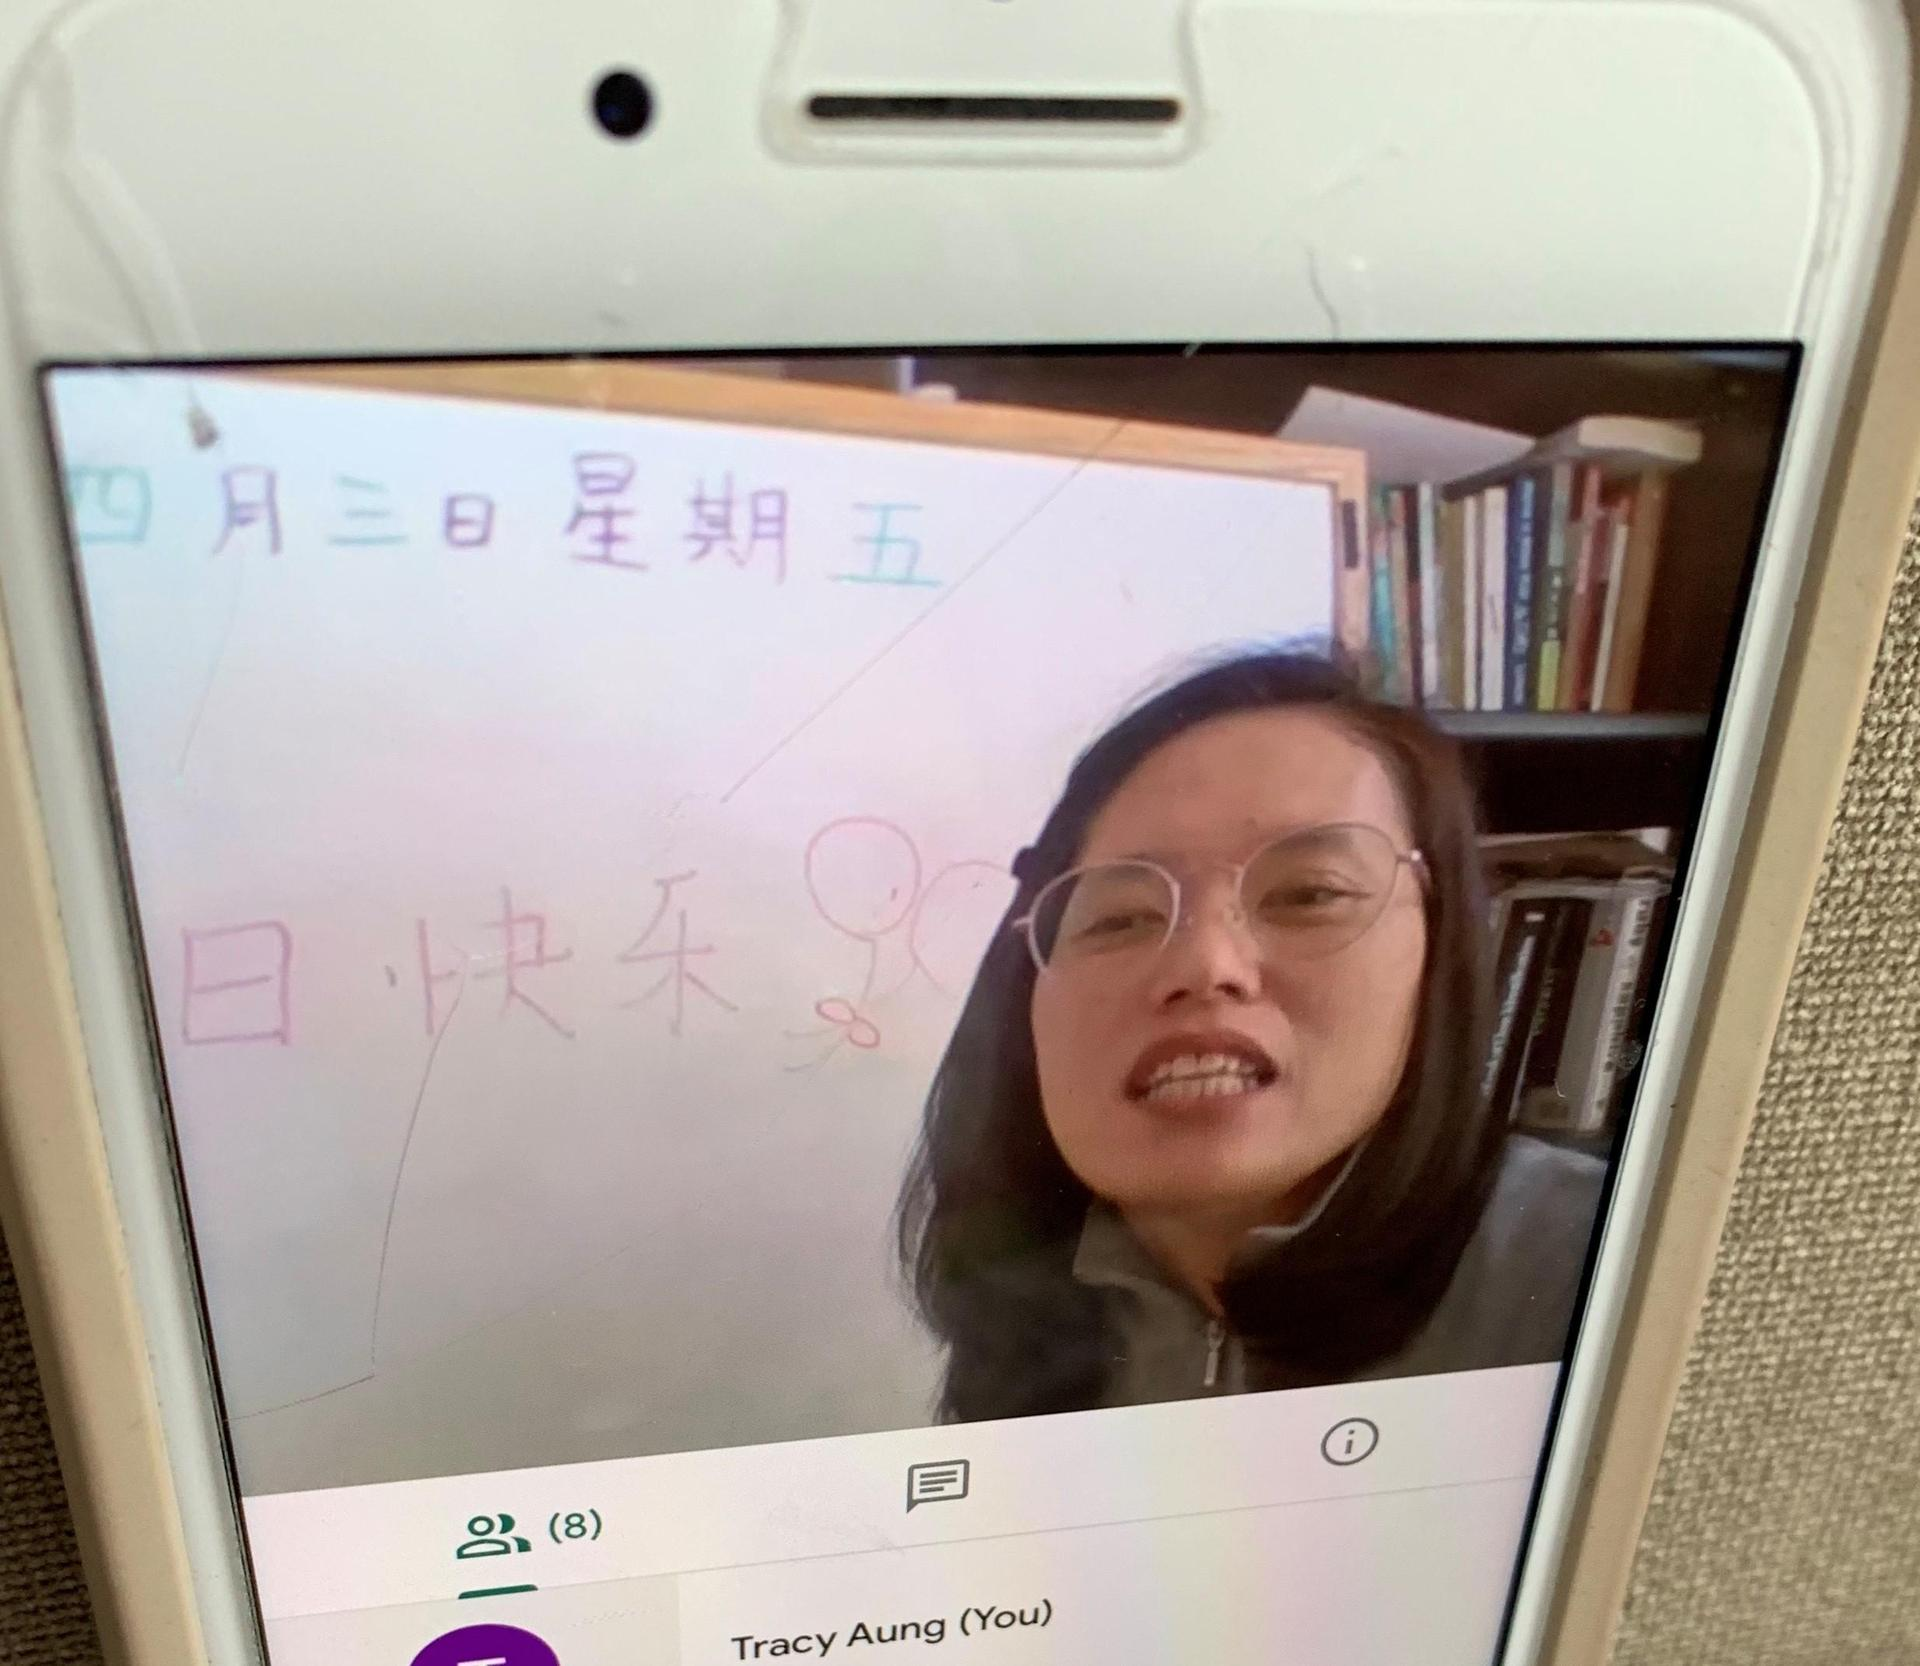 A teacher giving online instruction in Chinese